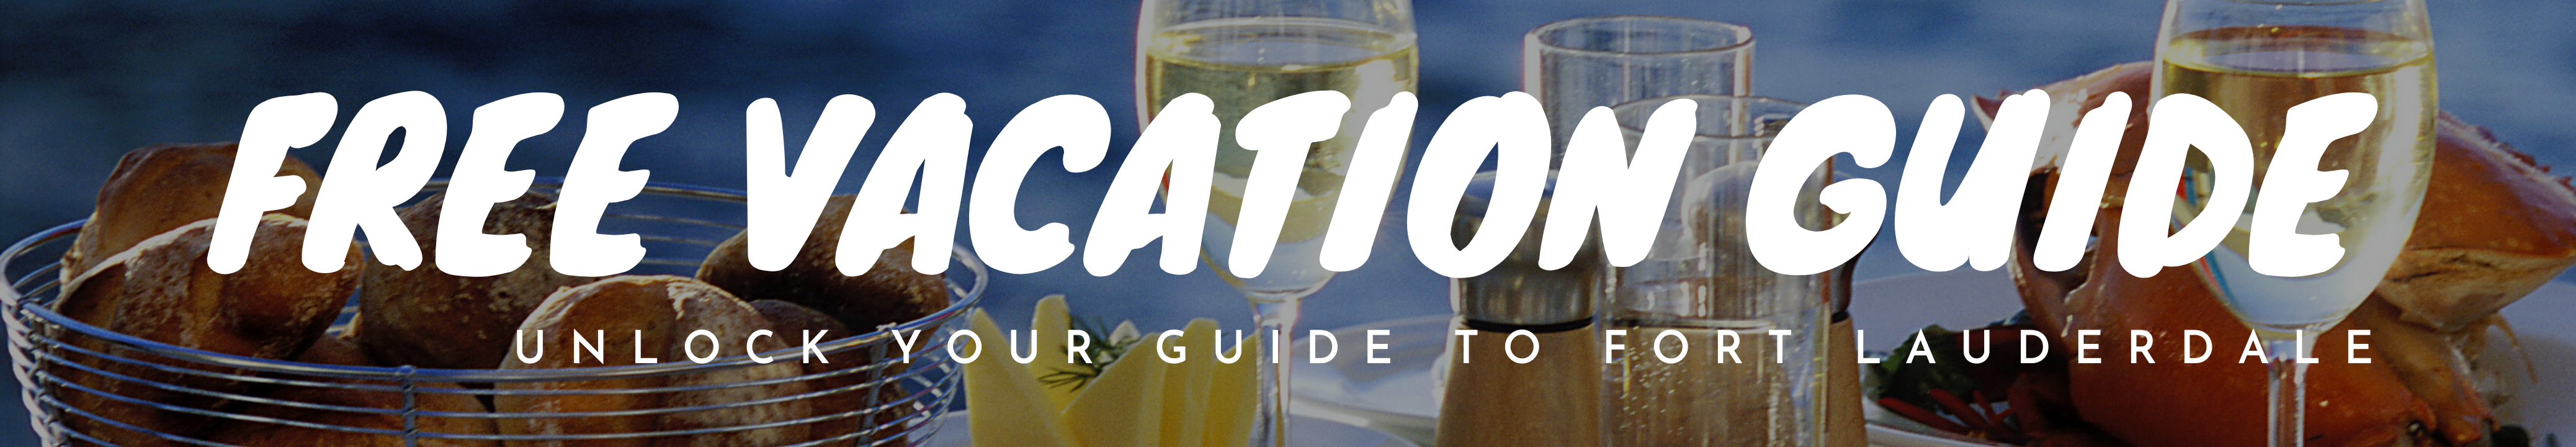 free vacation guide